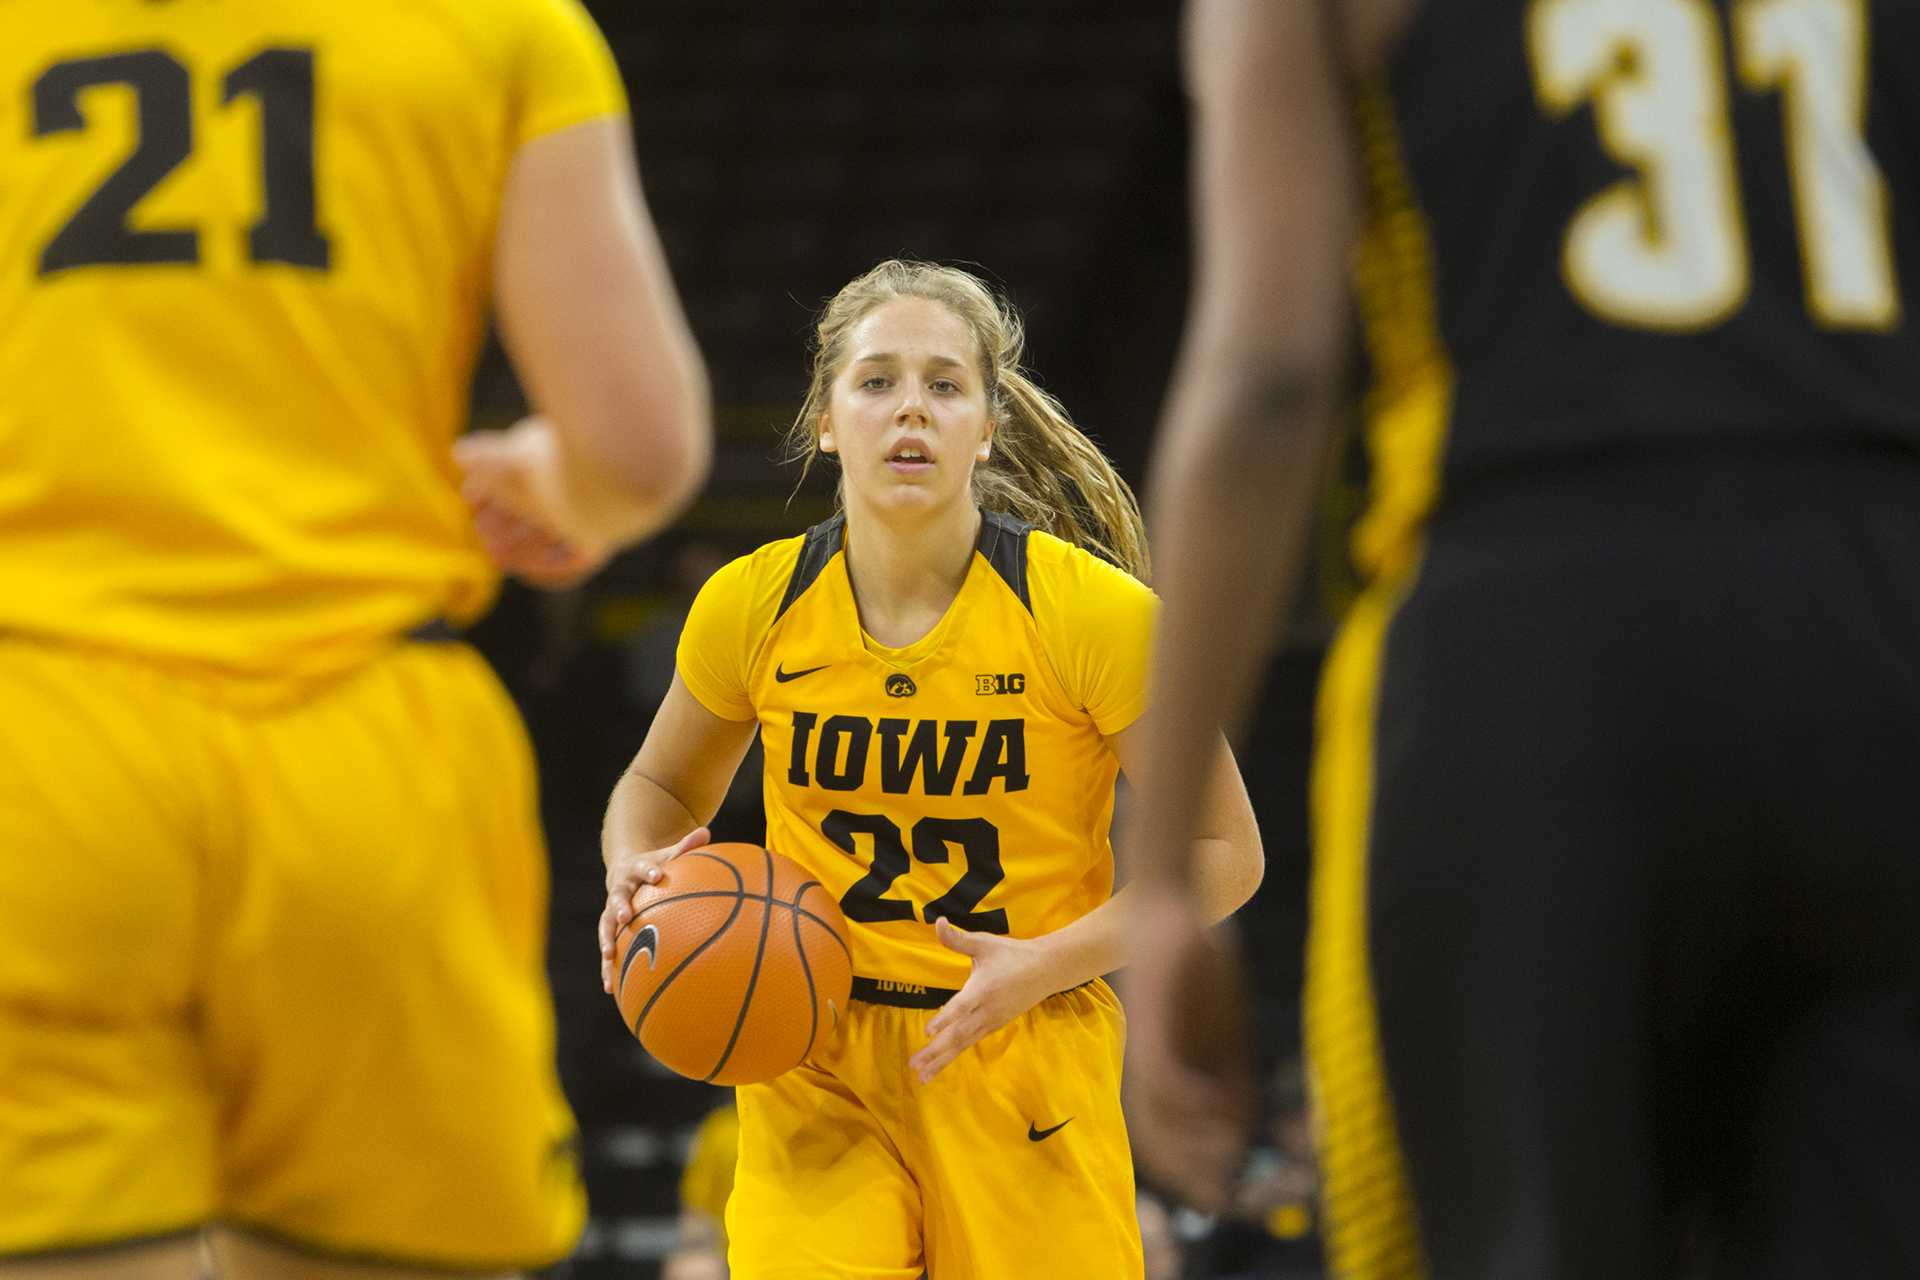 Iowa guard Kathleen Doyle dribbles the ball during the Iowa/Arkansas-Pine Bluff basketball game in Carver-Hawkeye Arena on Saturday, Dec. 9, 2017. The Hawkeyes defeated the Golden Lions, 85-45. (Lily Smith/The Daily Iowan)